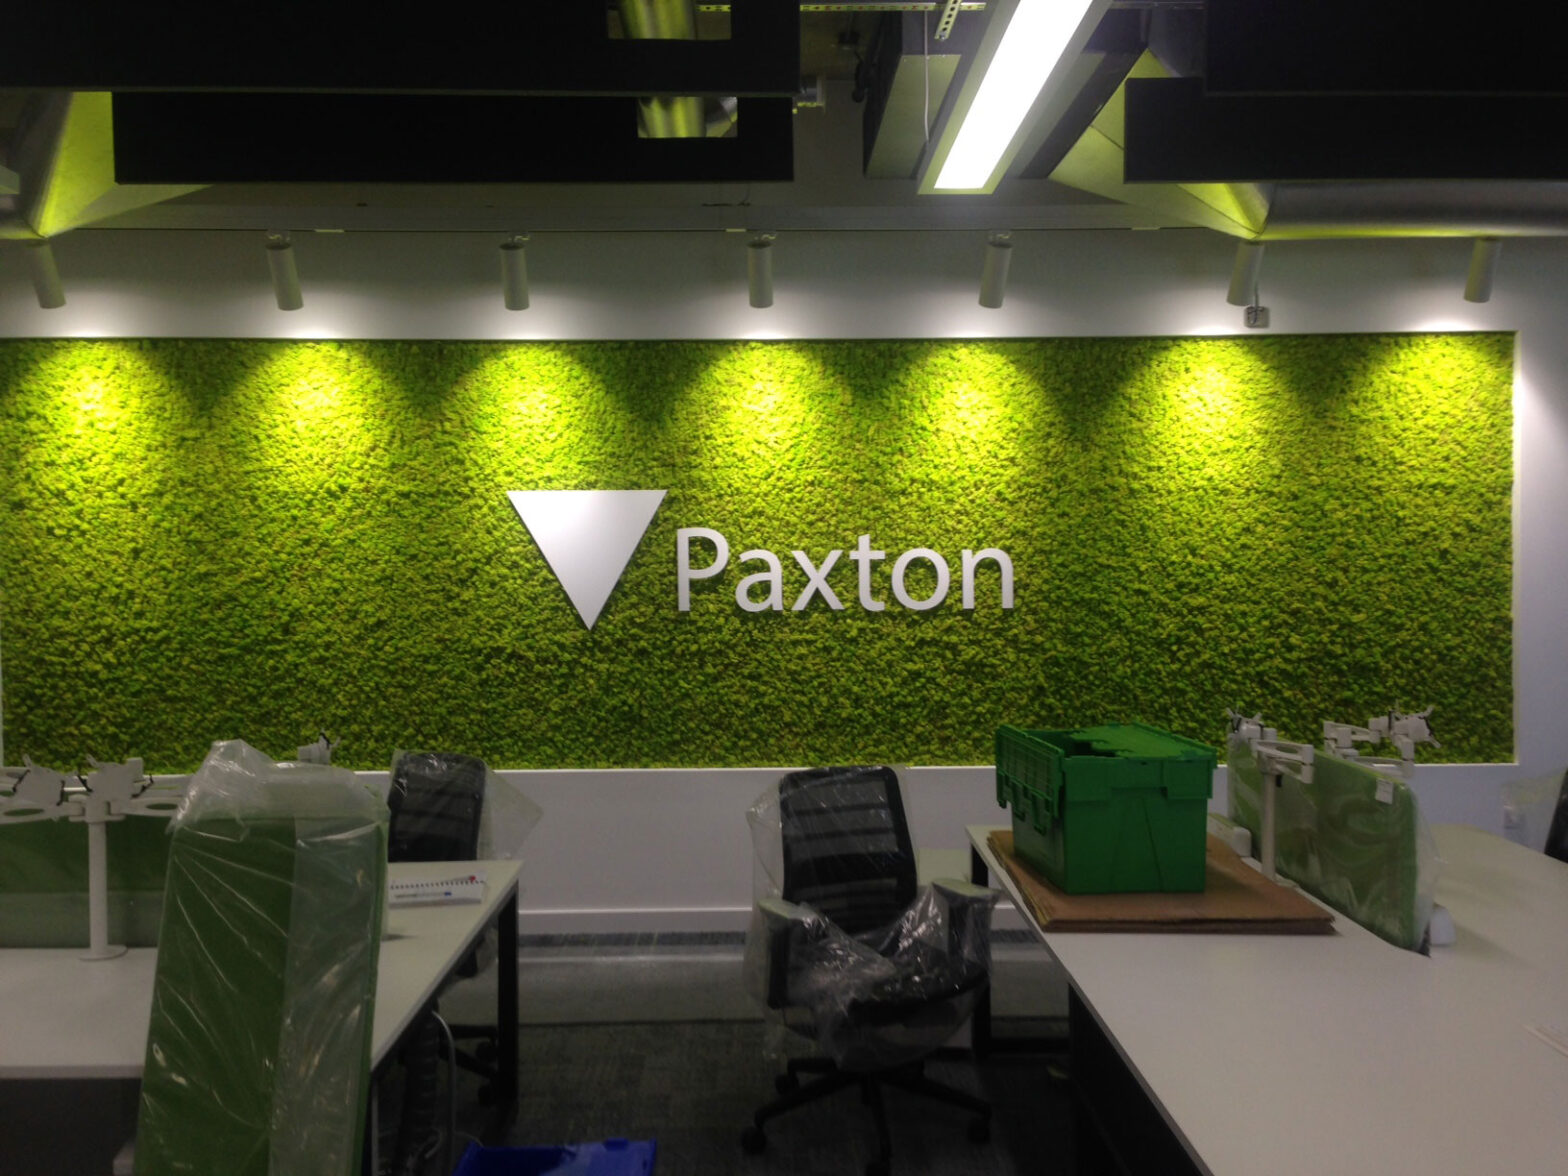 Right size sign for Paxton